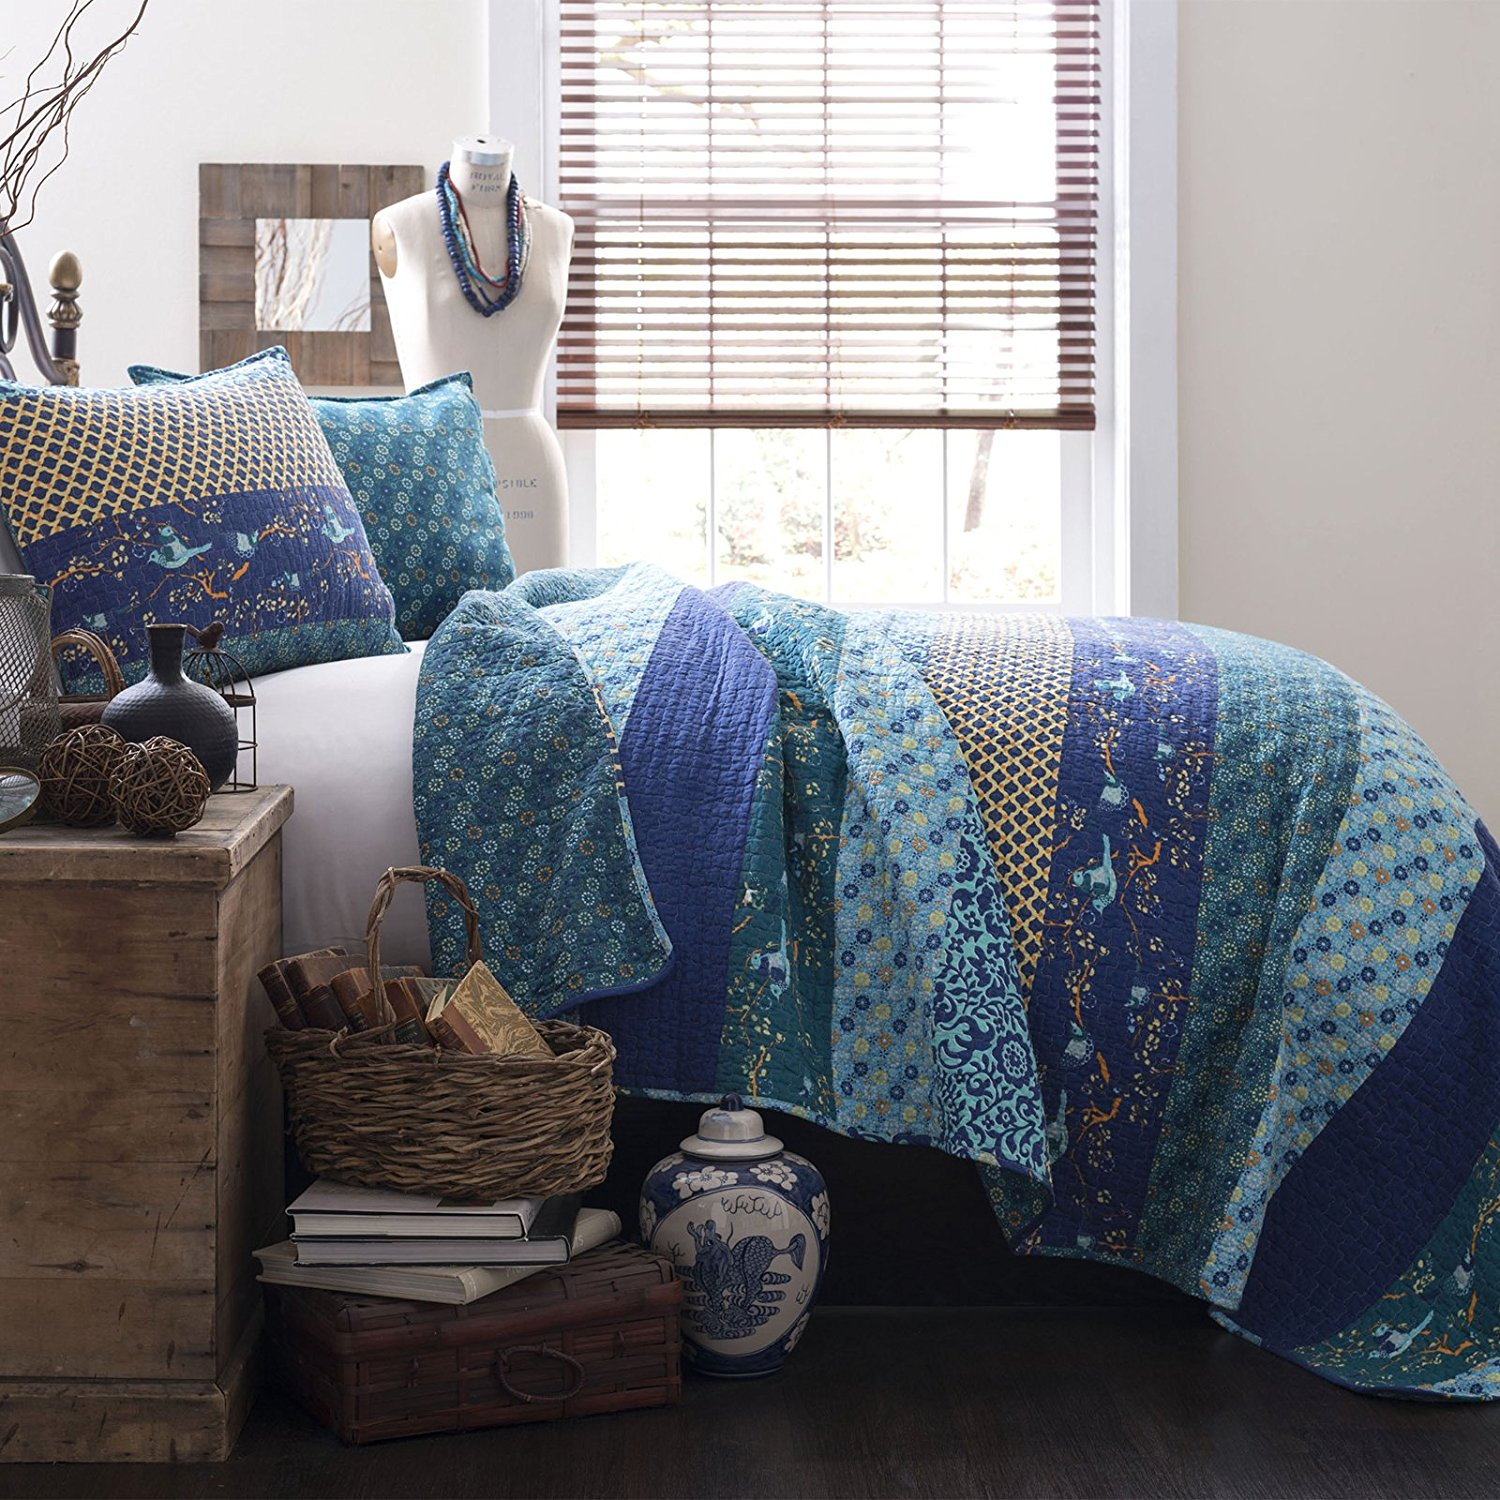 Peacock Pillow Case | Peacock Duvet Set | Peacock Bedding